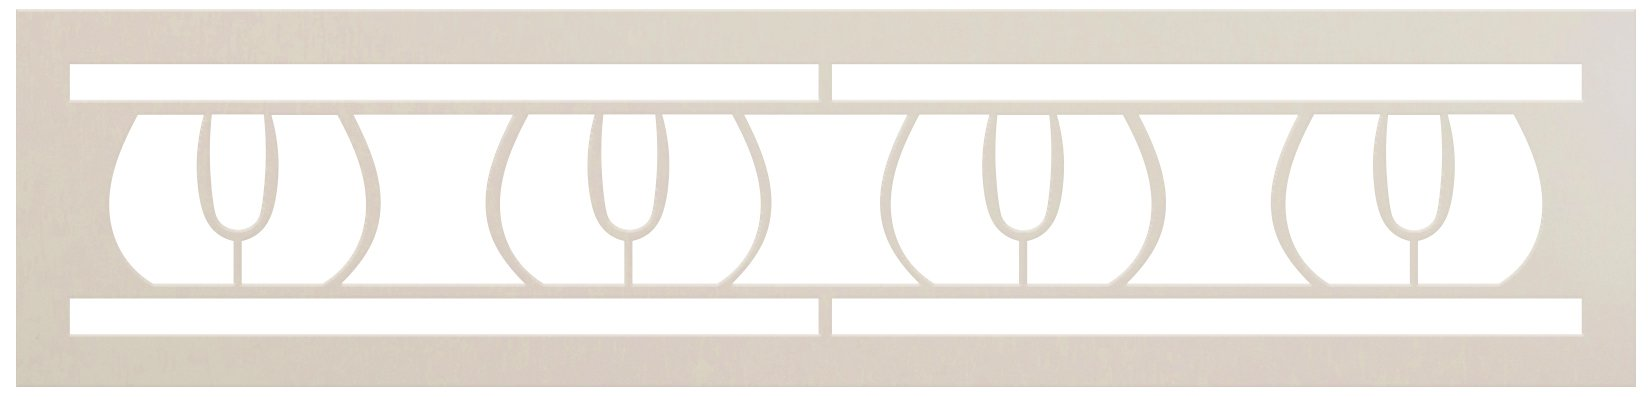 Flower Bud Thick Border Stencil by StudioR12   DIY Greek Geometric Pattern Home Decor   Craft & Paint Wood Sign Reusable Mylar Template   Select Size